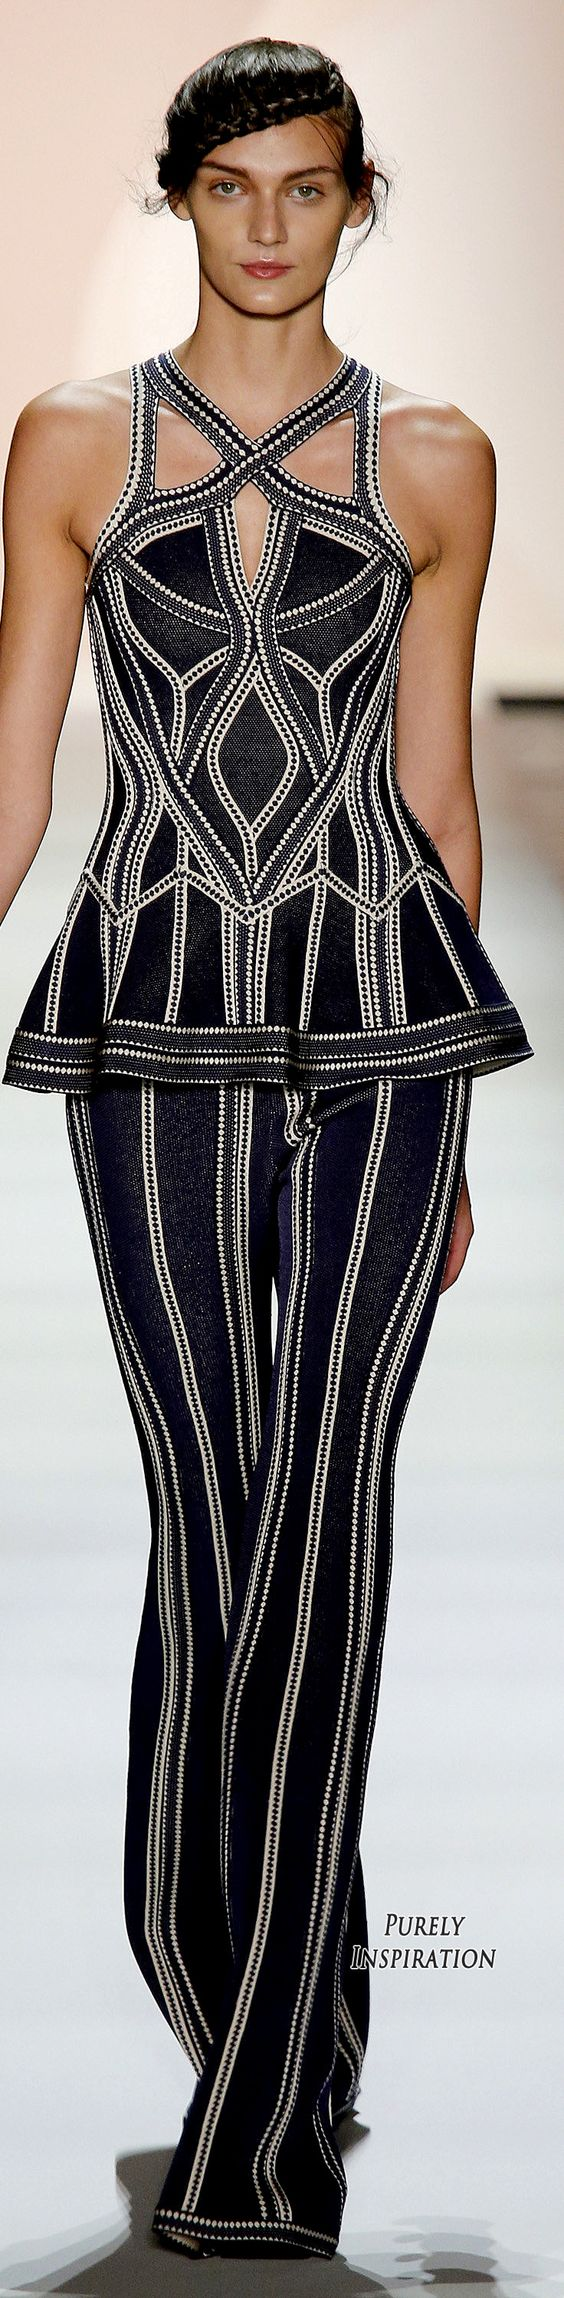 Hervé Léger by Max Azria SS2016 Women's Fashion RTW | Purely Inspiration: